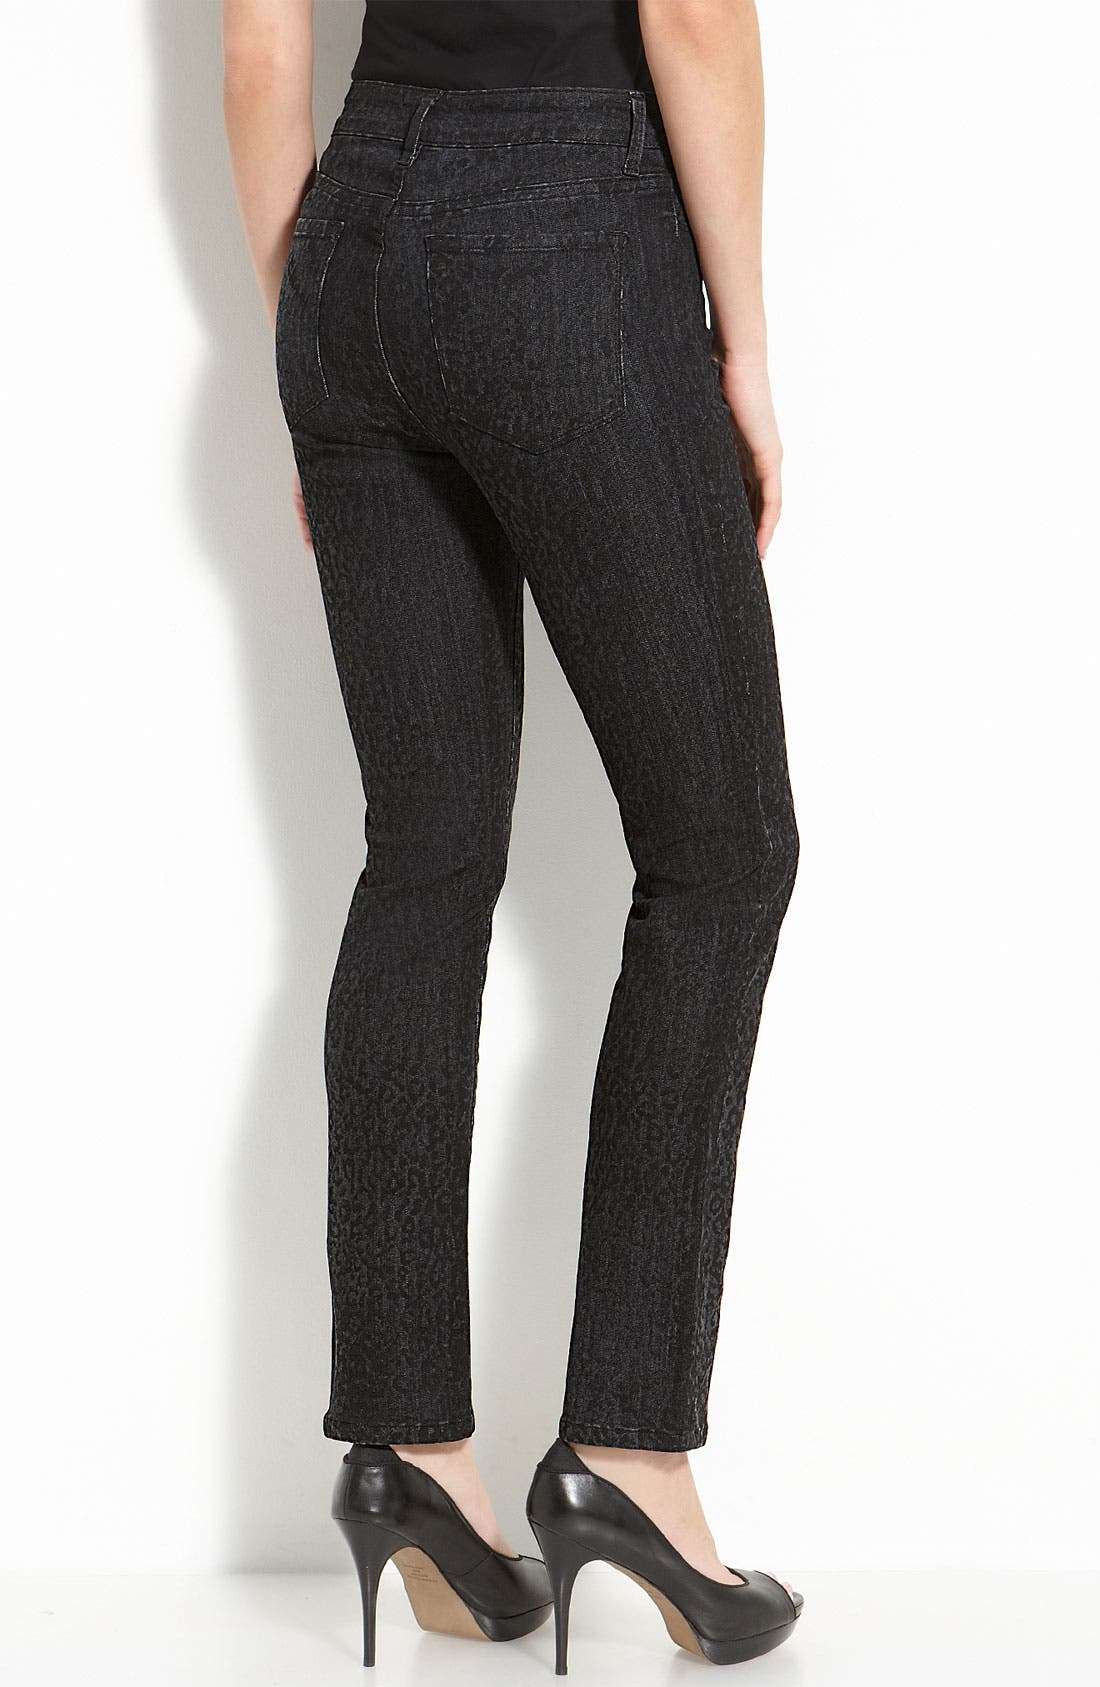 Alternate Image 2  - Not Your Daughter's Jeans® 'Sheri' Patterned Skinny Stretch Jeans (Plus)